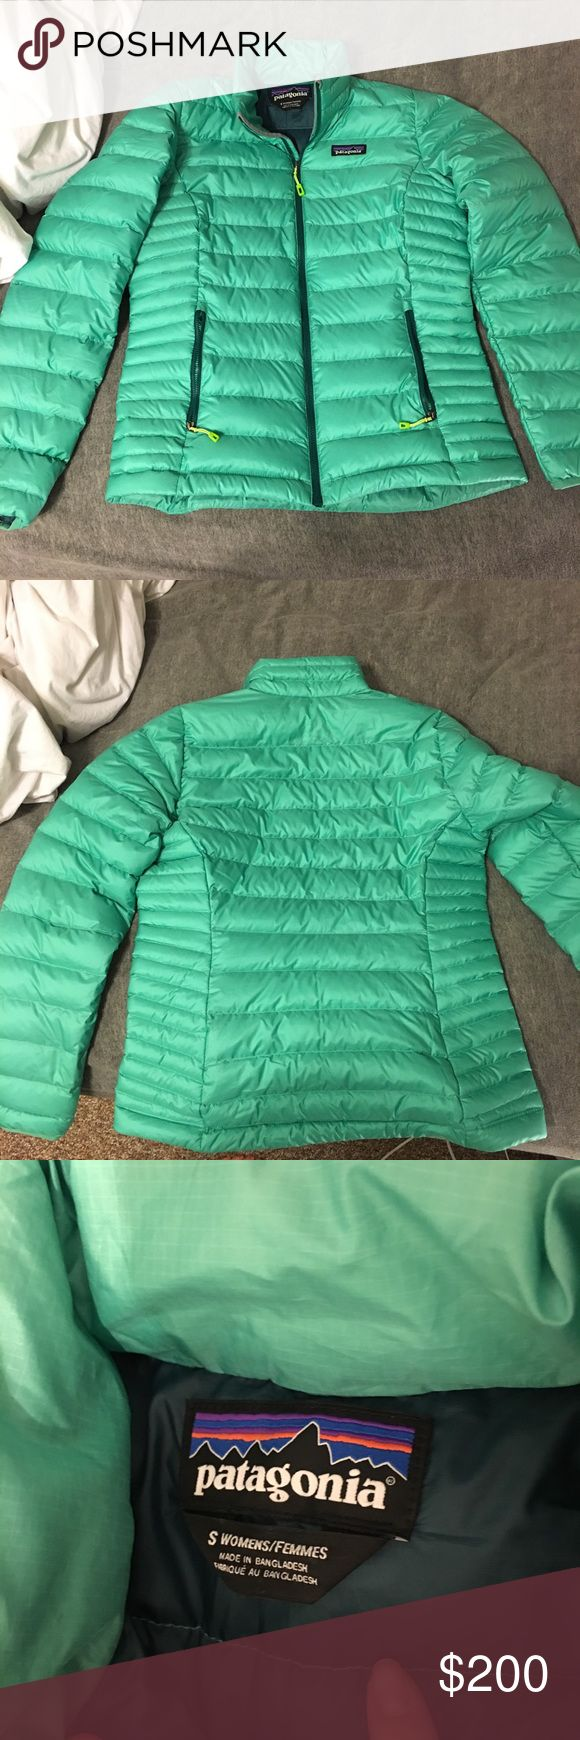 Patagonia Down Sweater jacket patagonia aqua jacket new without tags Patagonia Jackets & Coats Puffers